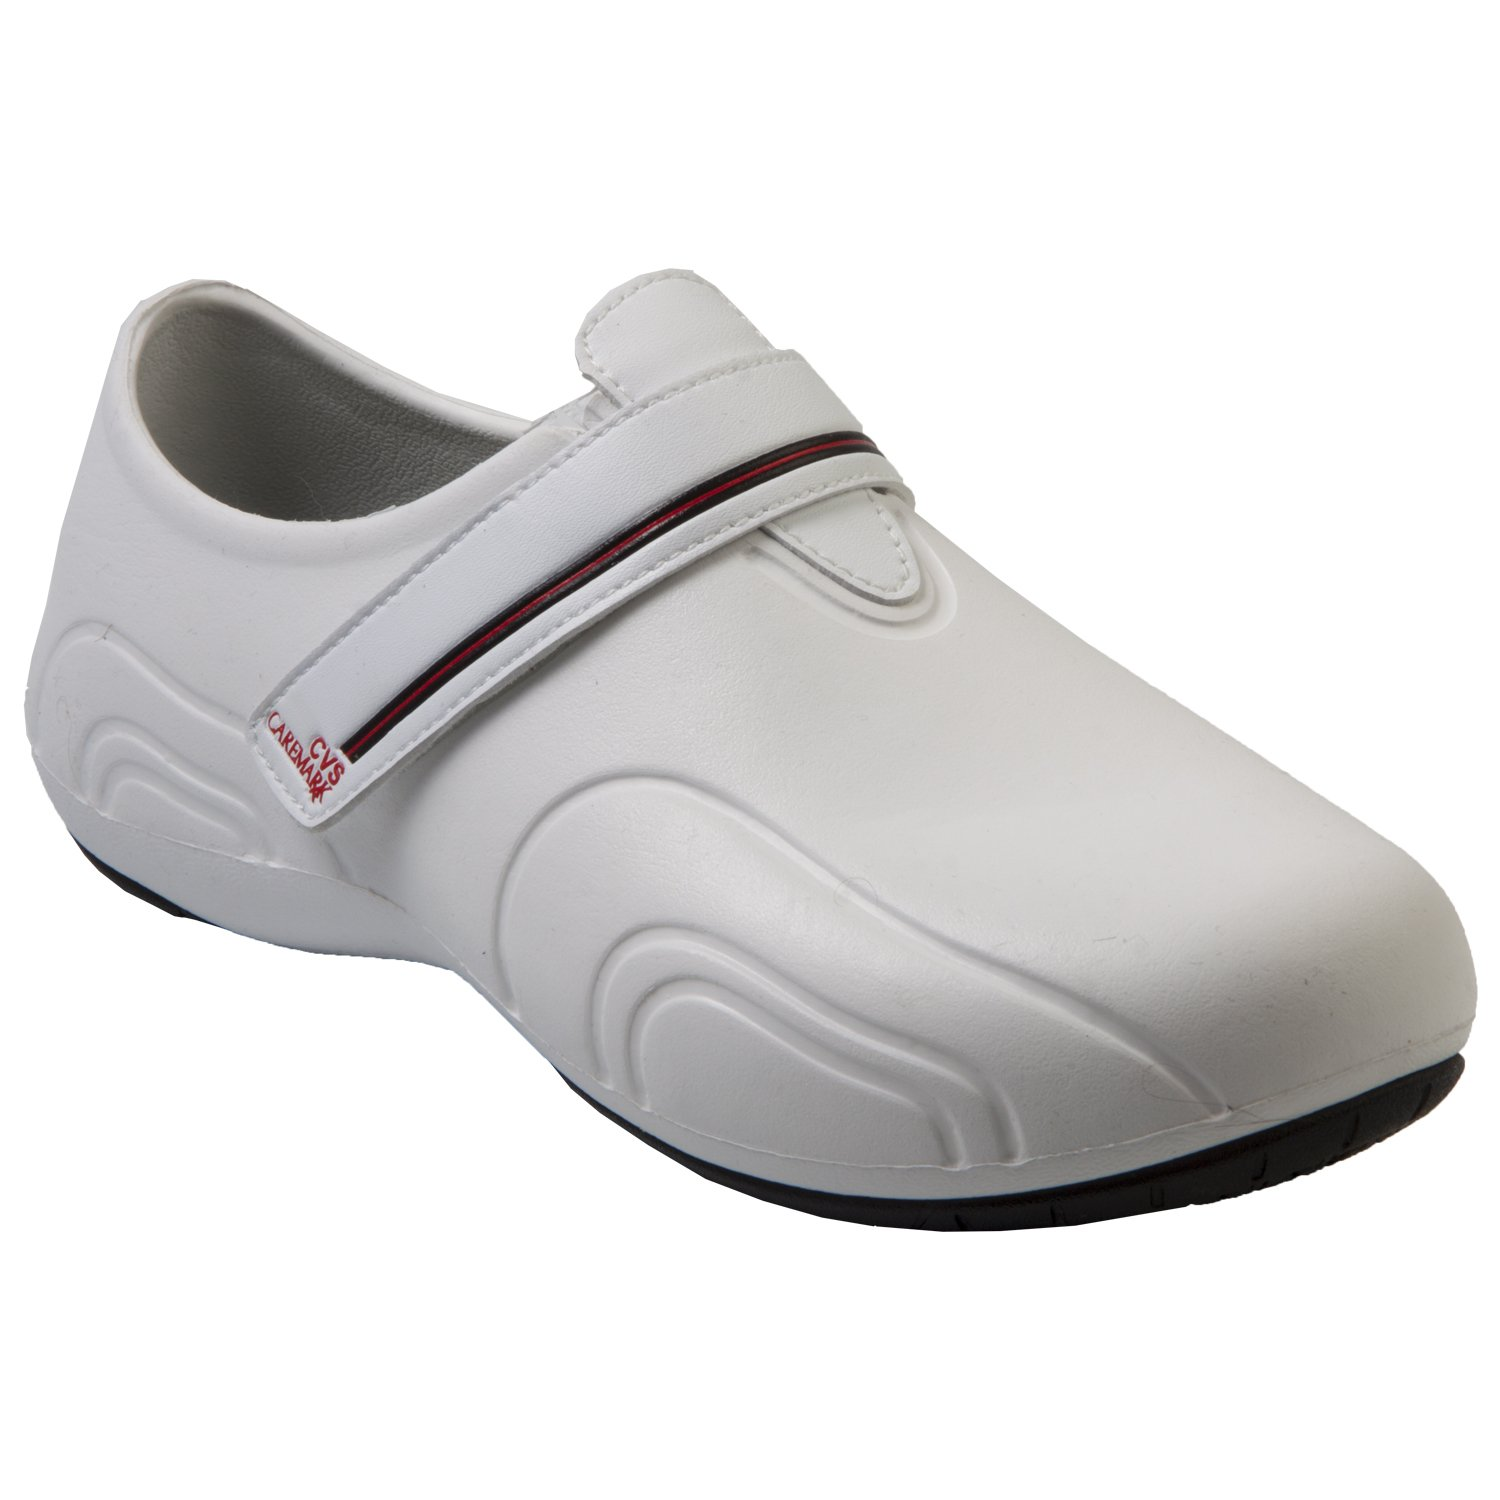 DAWGS Red Label Women's Ultralite Tracker Work Shoes B01BN12JQ2 9 B(M) US|White With Black